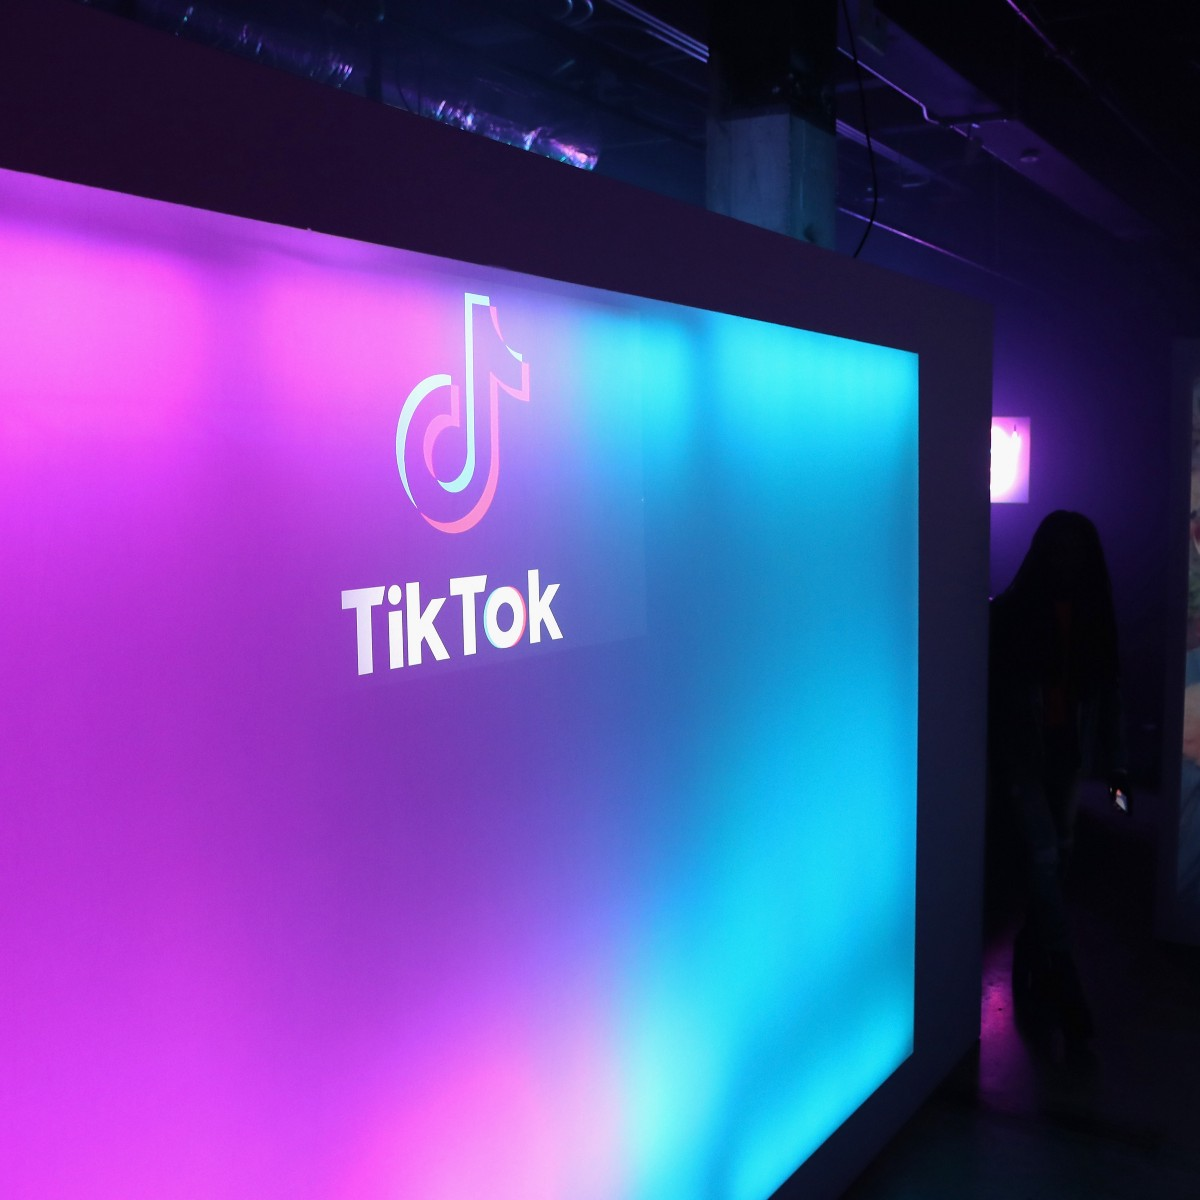 TikTok Is a Wake-Up Call to Silicon Valley